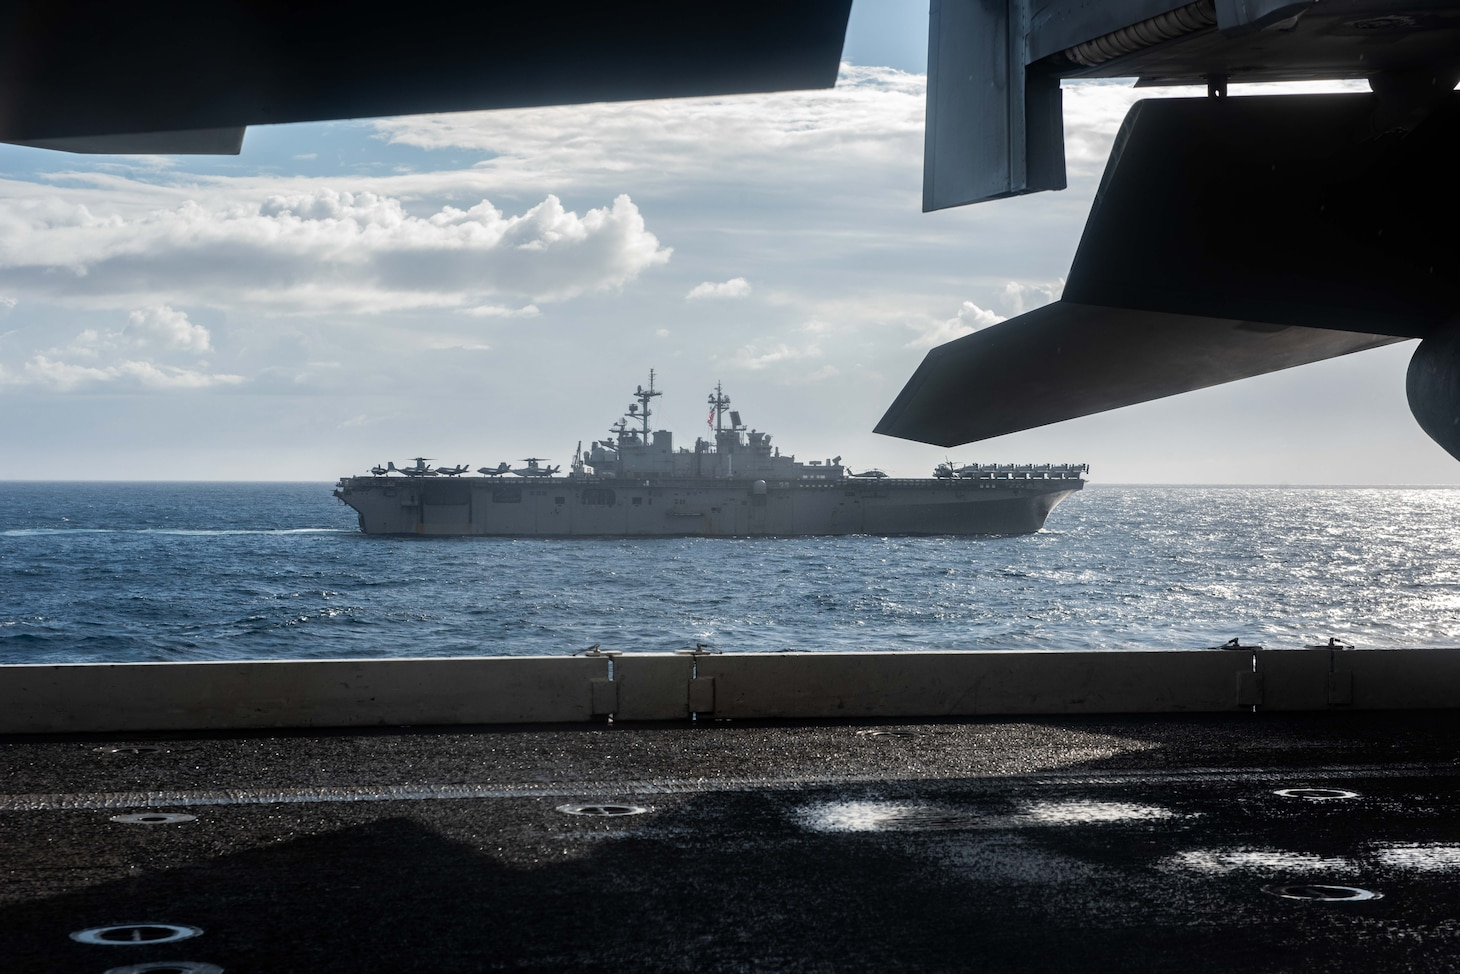 CORAL SEA (July 11, 2019) Amphibious assault ship USS Wasp (LHD 1) sails alongside the forward deployed aircraft carrier USS Ronald Reagan (CVN 76), as U.S. Navy, U.S. Coast Guard, Royal Australian Navy, Royal Canadian Navy and Japan Maritime Self-Defense Force ships sail together in formation during Talisman Sabre 2019. Talisman Sabre 2019 illustrates the closeness of the Australian and U.S. alliance and the strength of the military-to-military relationship. This is the eighth iteration of this exercise.